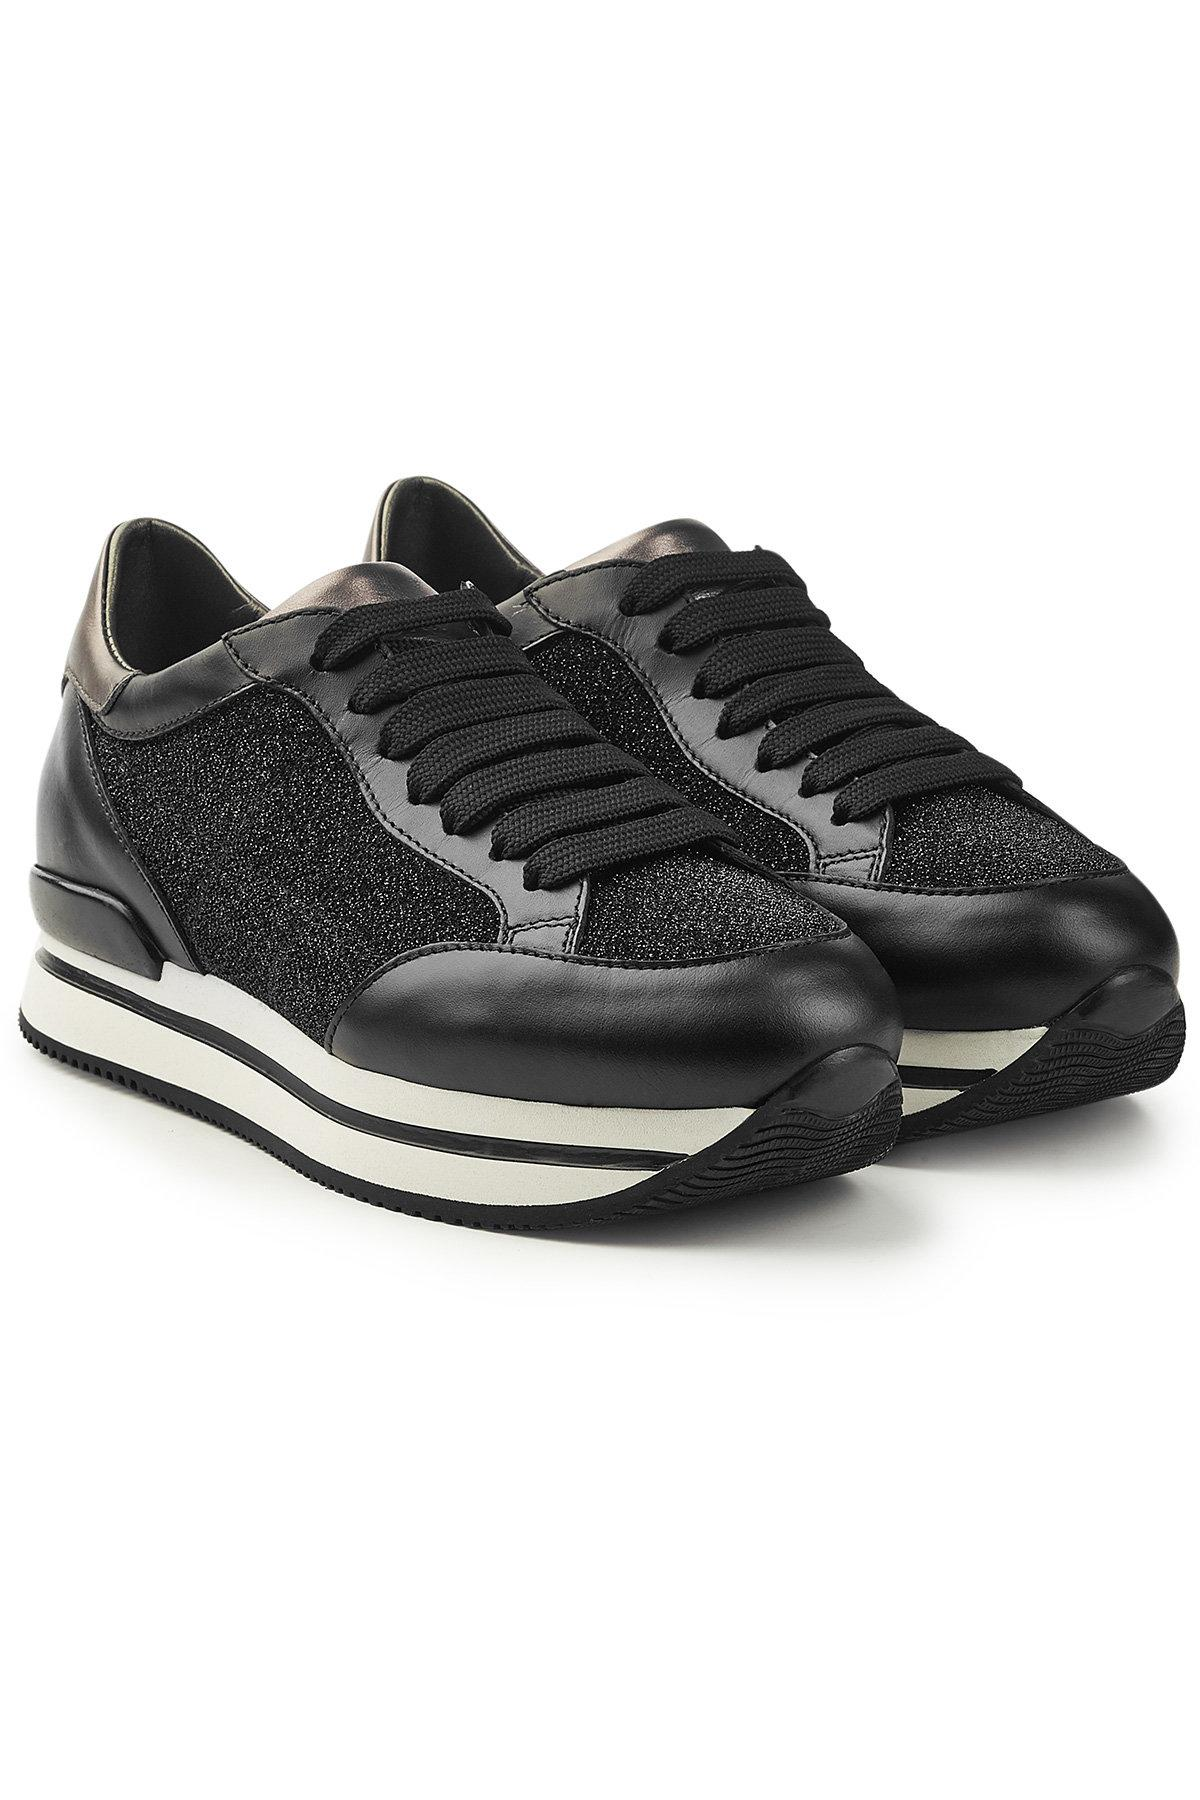 Hogan Leather Platform Sneakers With Glitter In Black   ModeSens